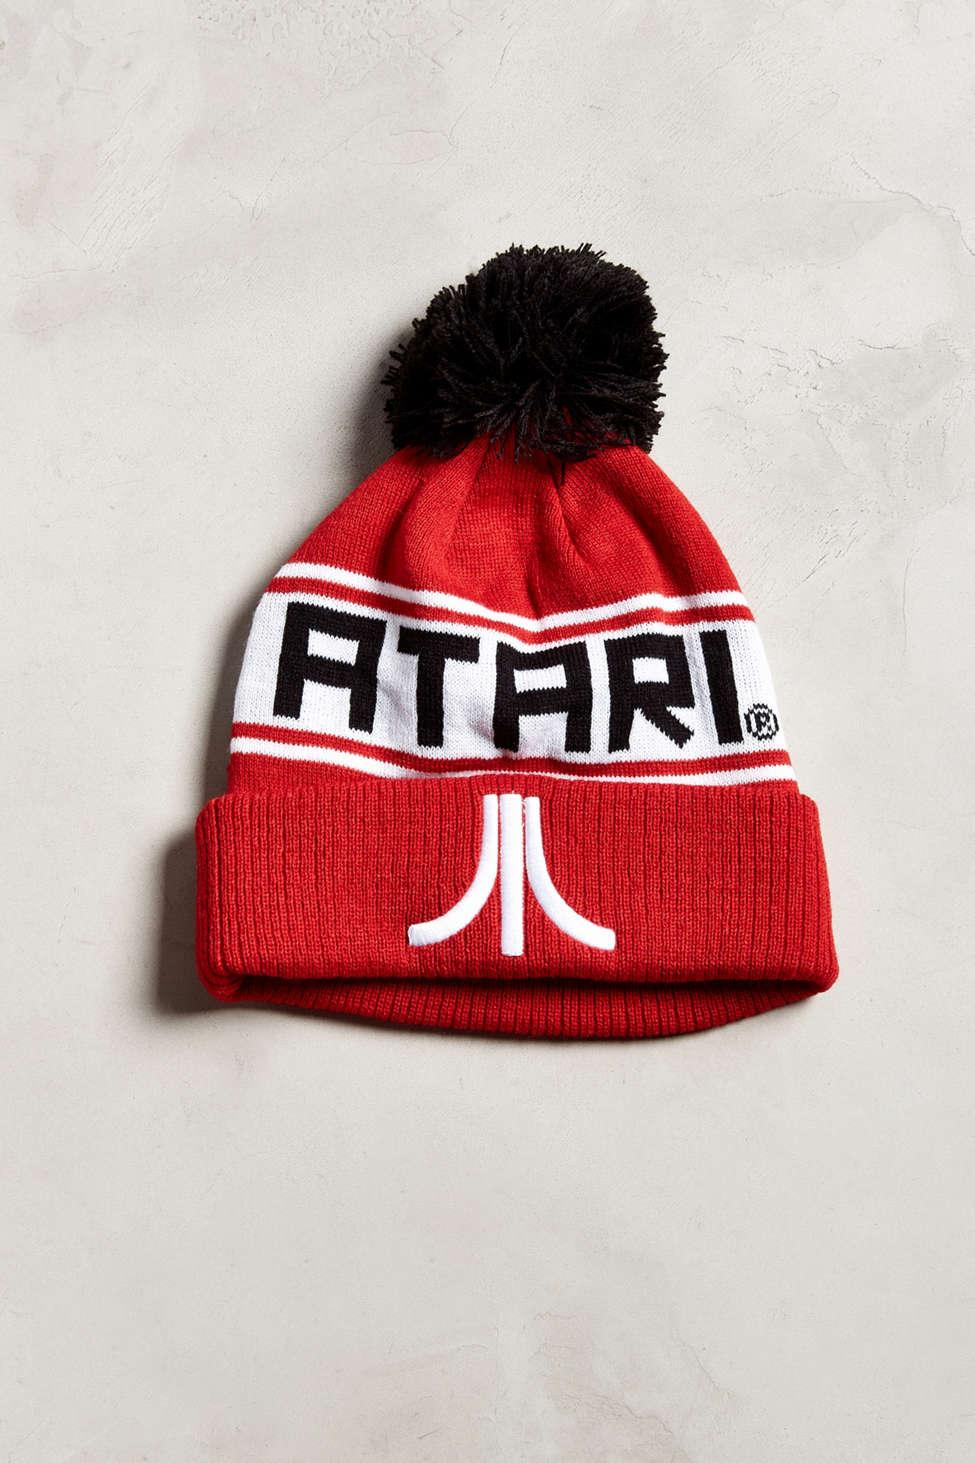 8ad8bee33 Urban Outfitters Atari Pompom Beanie in Red - Lyst